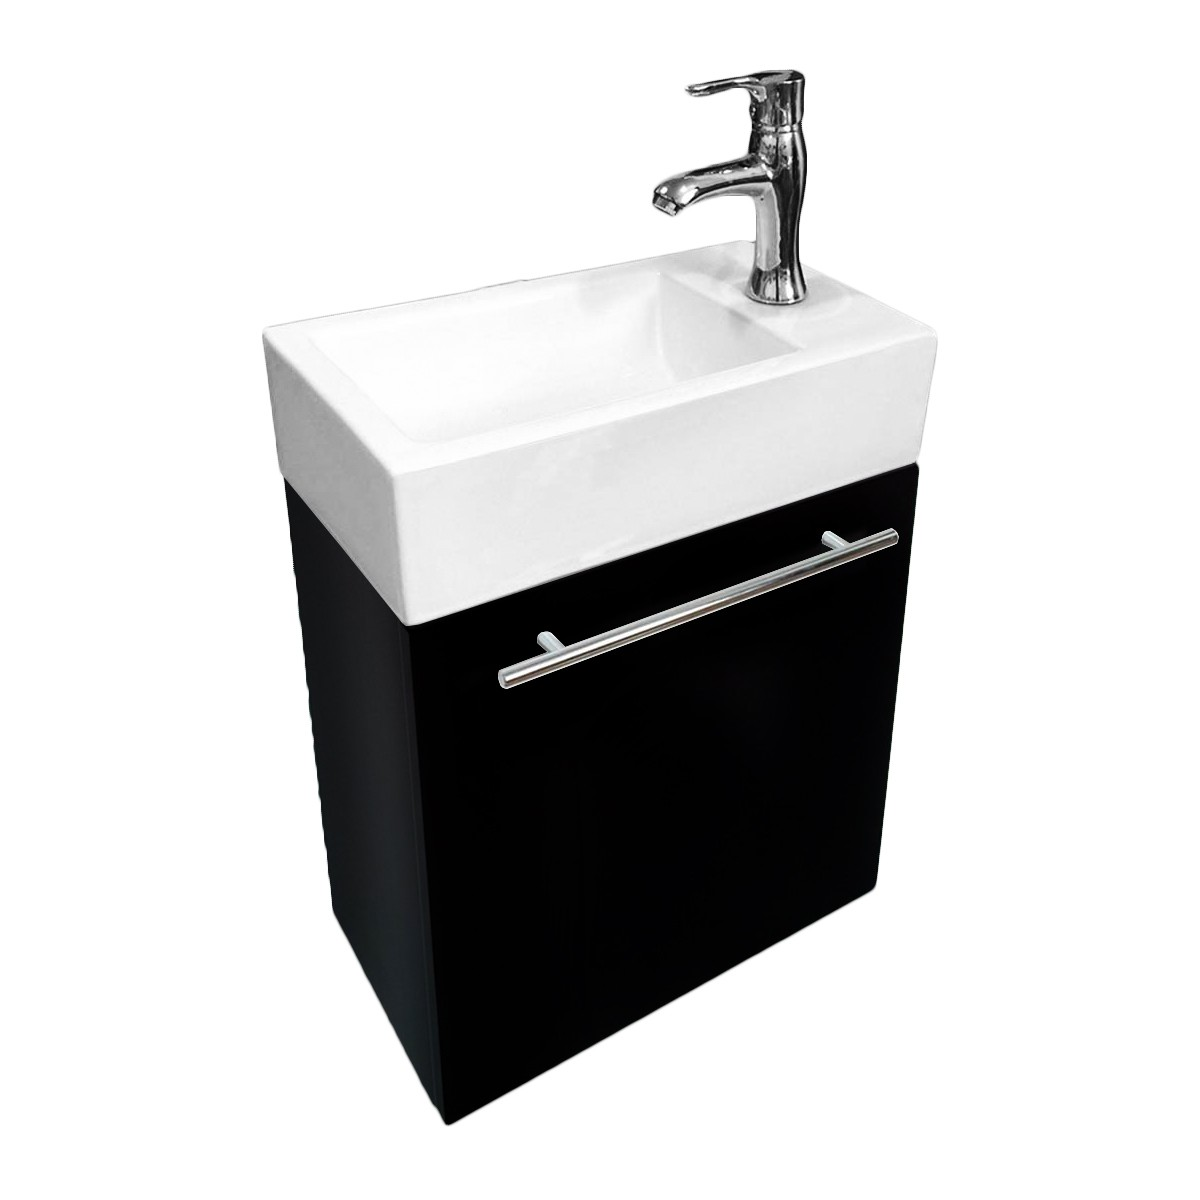 Small Bathroom Vanity With Sink Renovator S Supply Small Bathroom Vanity Cabinet Sink Wall Mount With Towel Bar Faucet And Drain